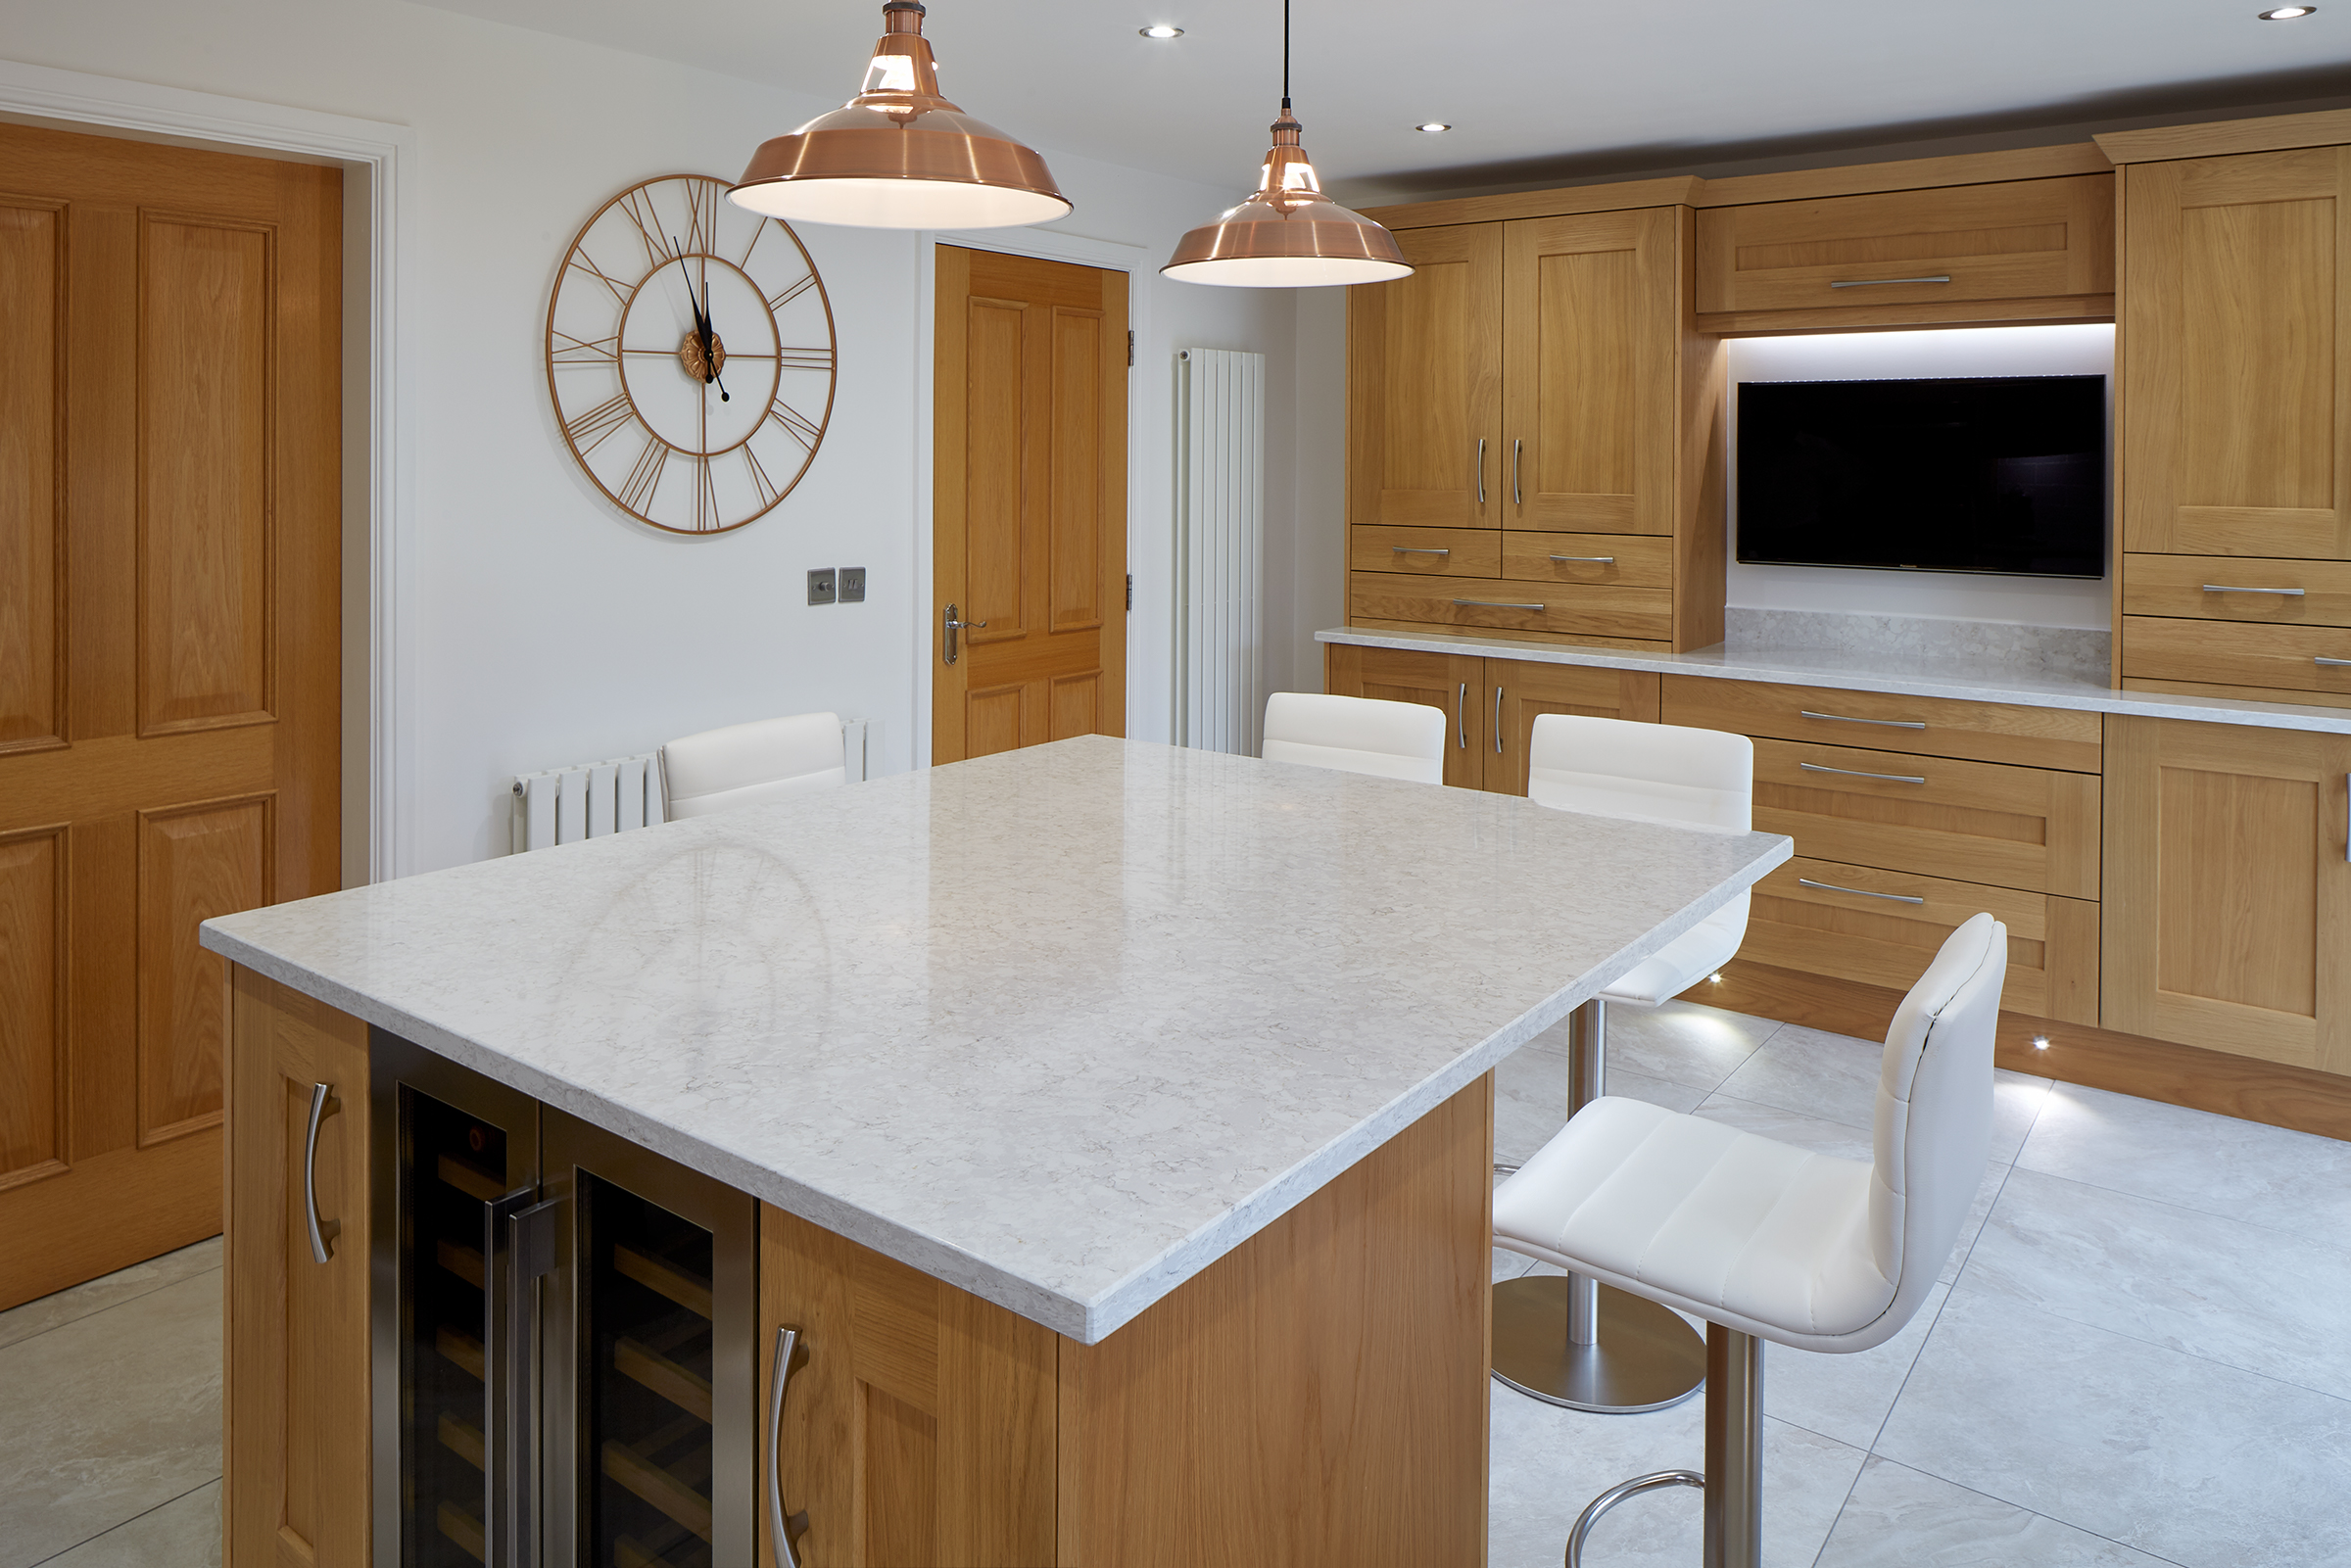 Full hardwood oak kitchen, with white granite worktops.